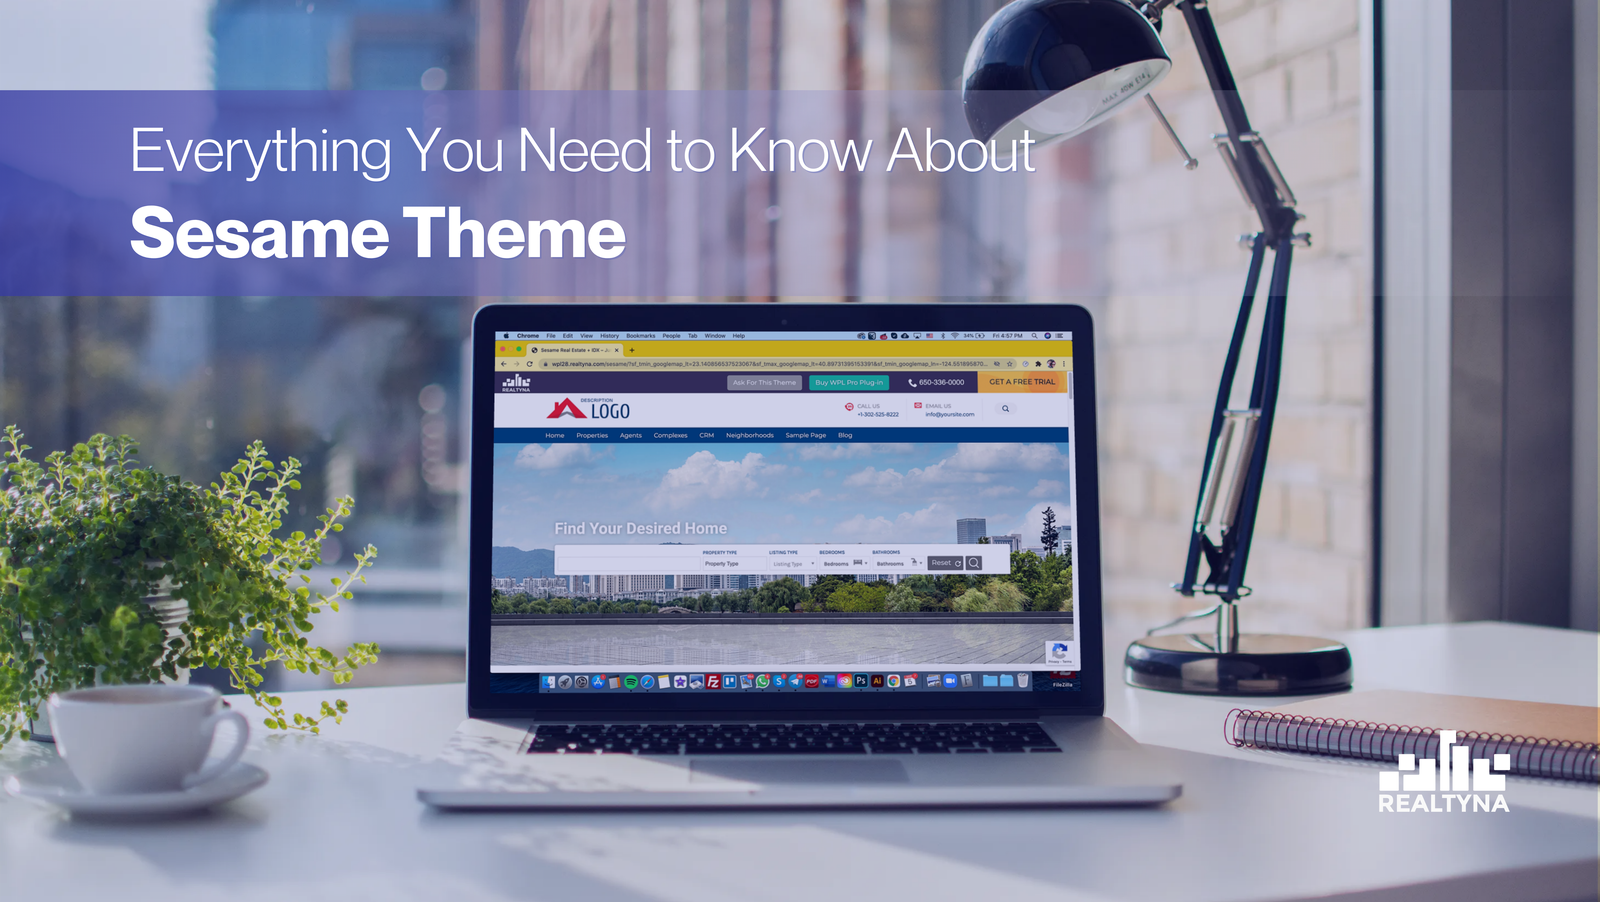 Everything You Need To Know About Sesame Theme